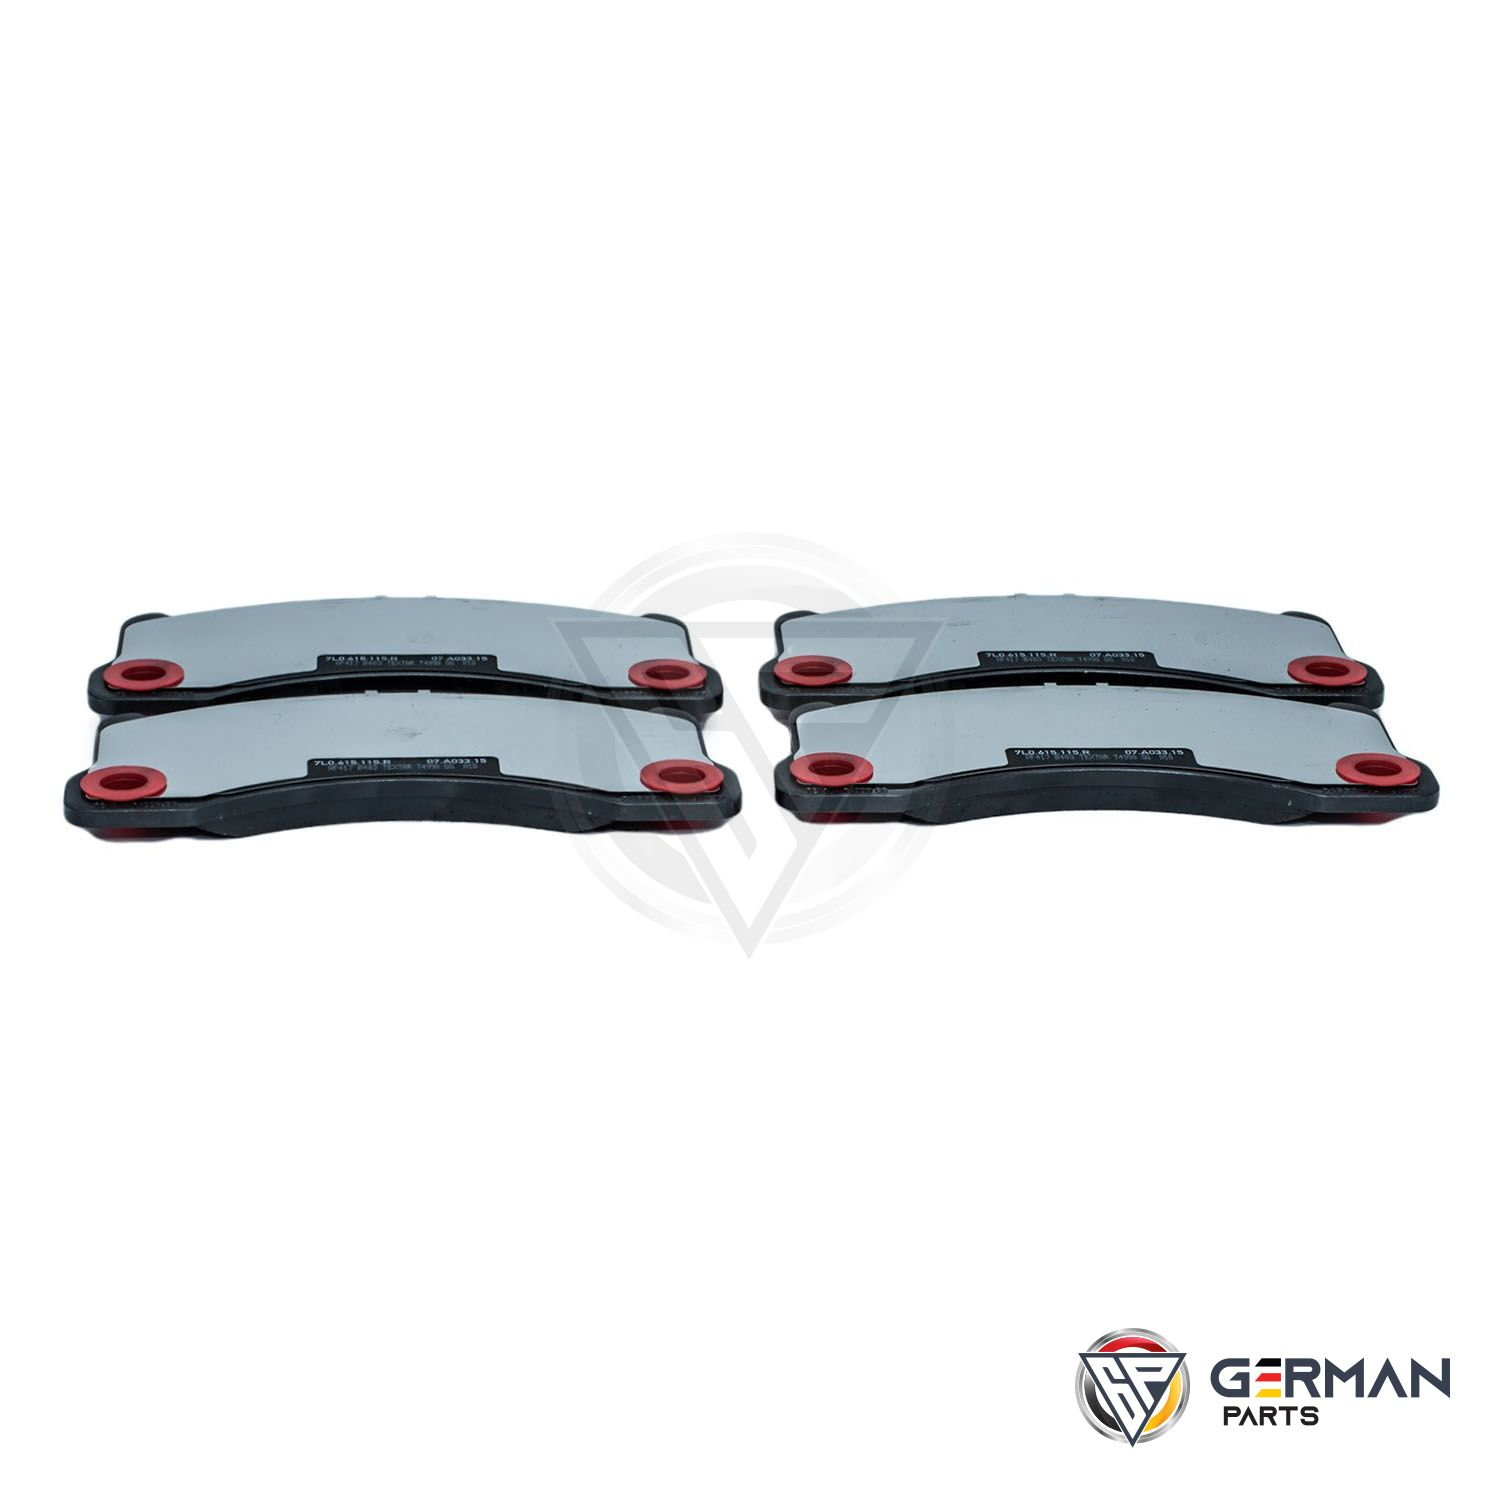 Buy Audi Volkswagen Front Brake Pad Set 7L0698151M - German Parts